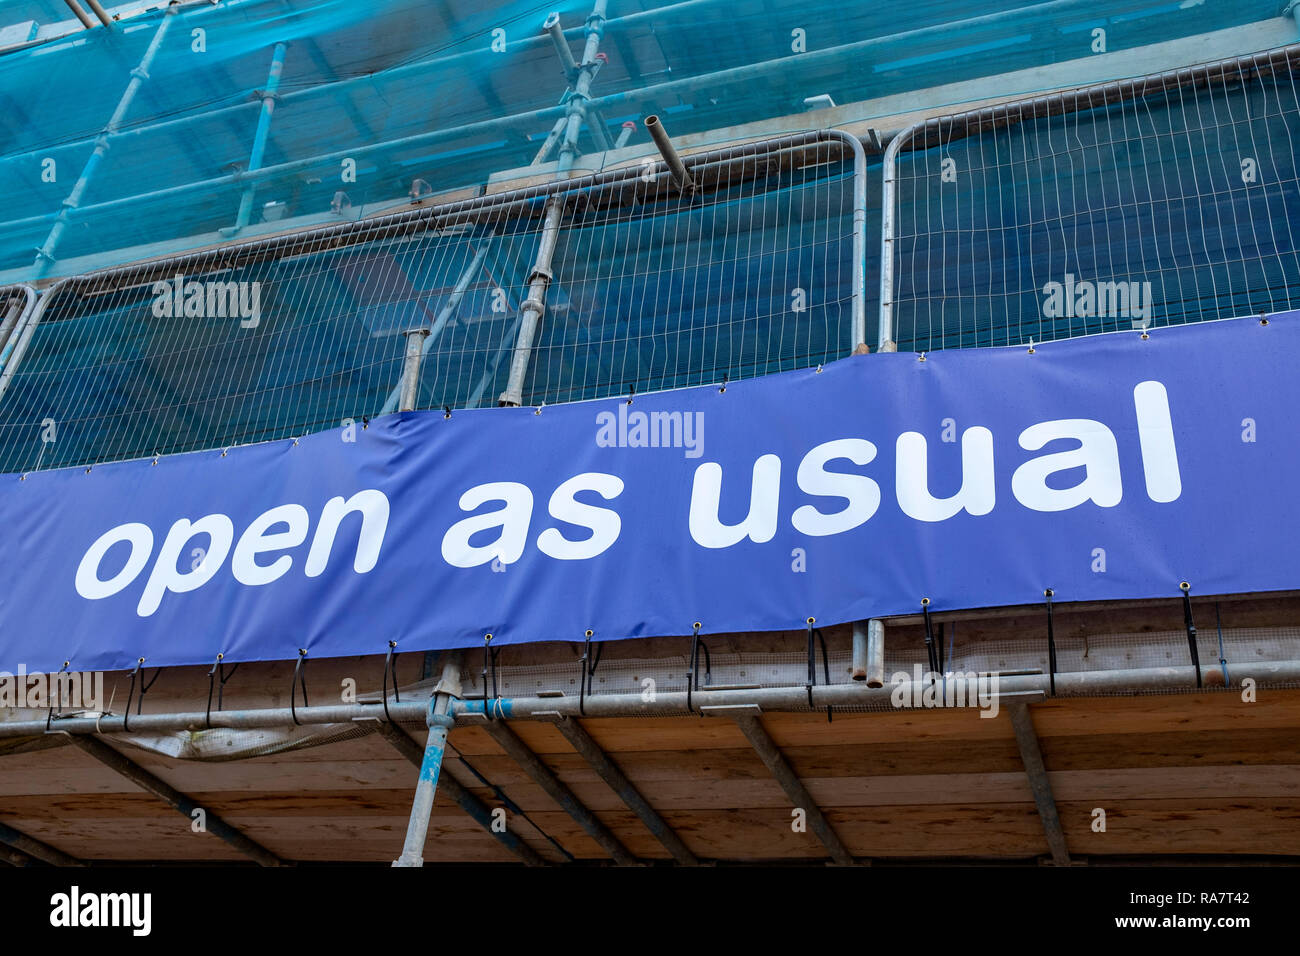 Shop in scaffolding with open as usual sign - Stock Image